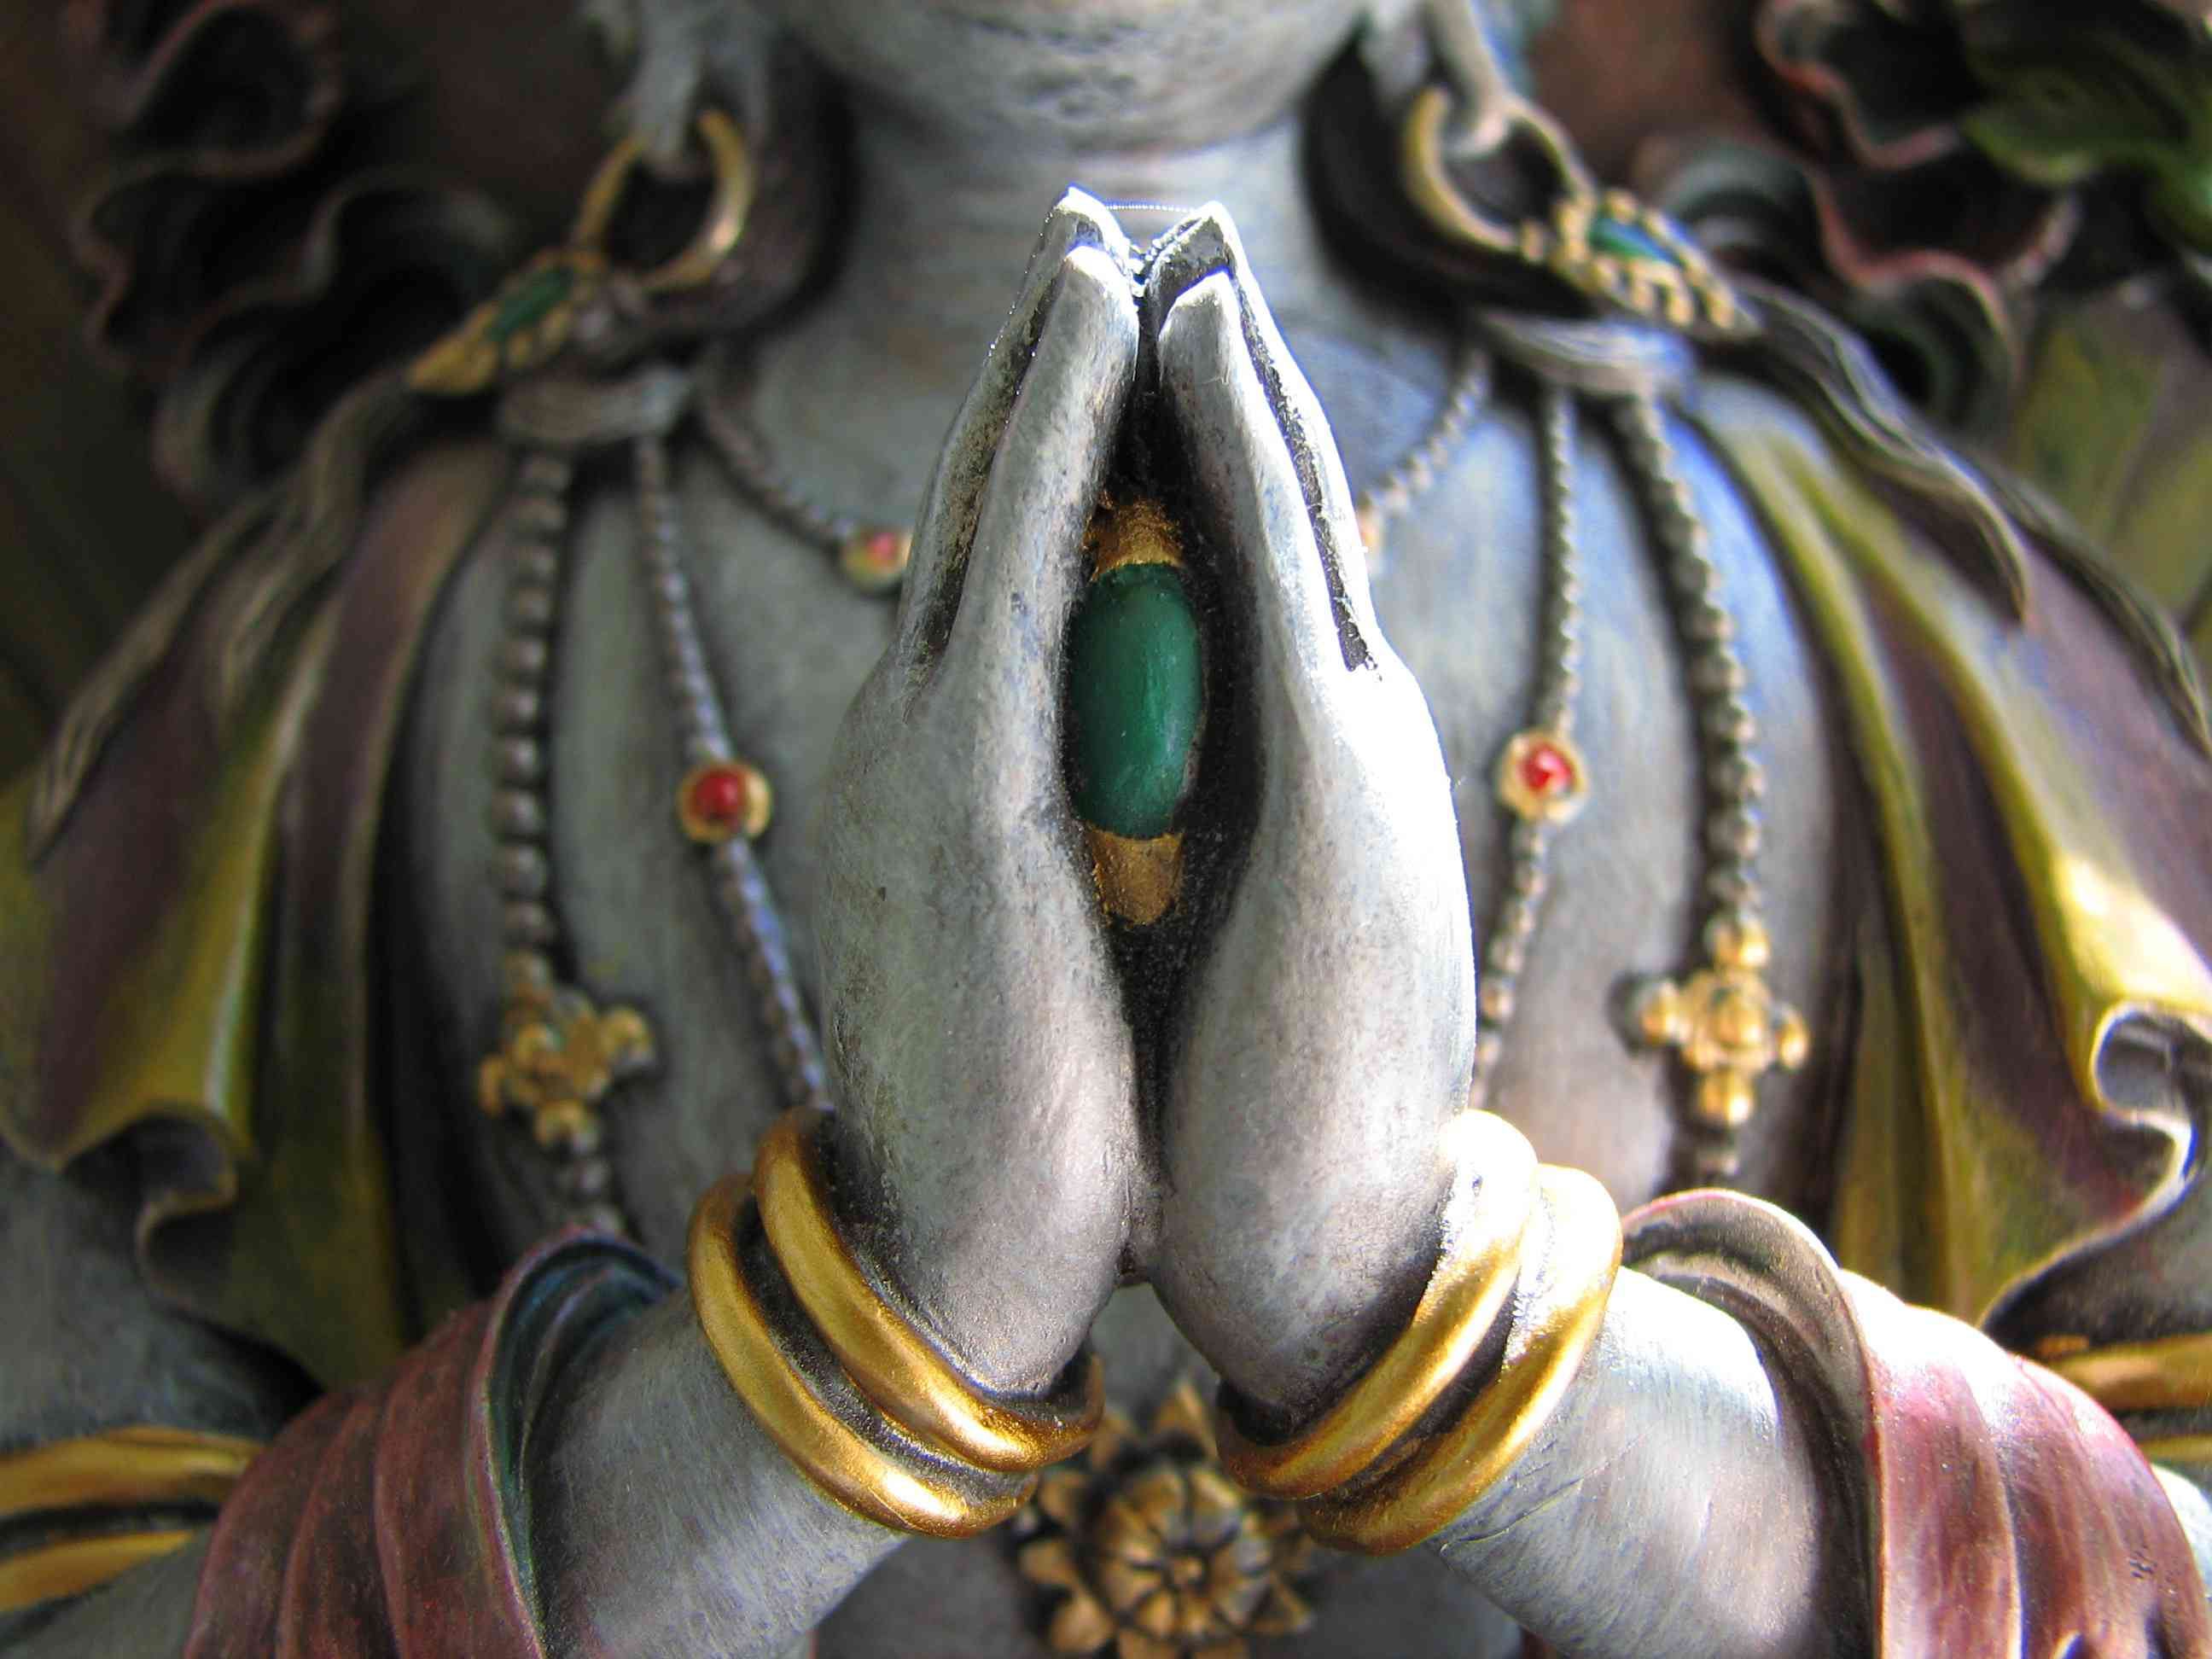 Avalokiteshvara is the Bodhisattva of Compassion. In his 4-armed manifestation, he holds the Wish-Fulfilling Jewel between his palms as he meditates on liberation for all beings. In his female form, he is Tara or Kwan Yin.